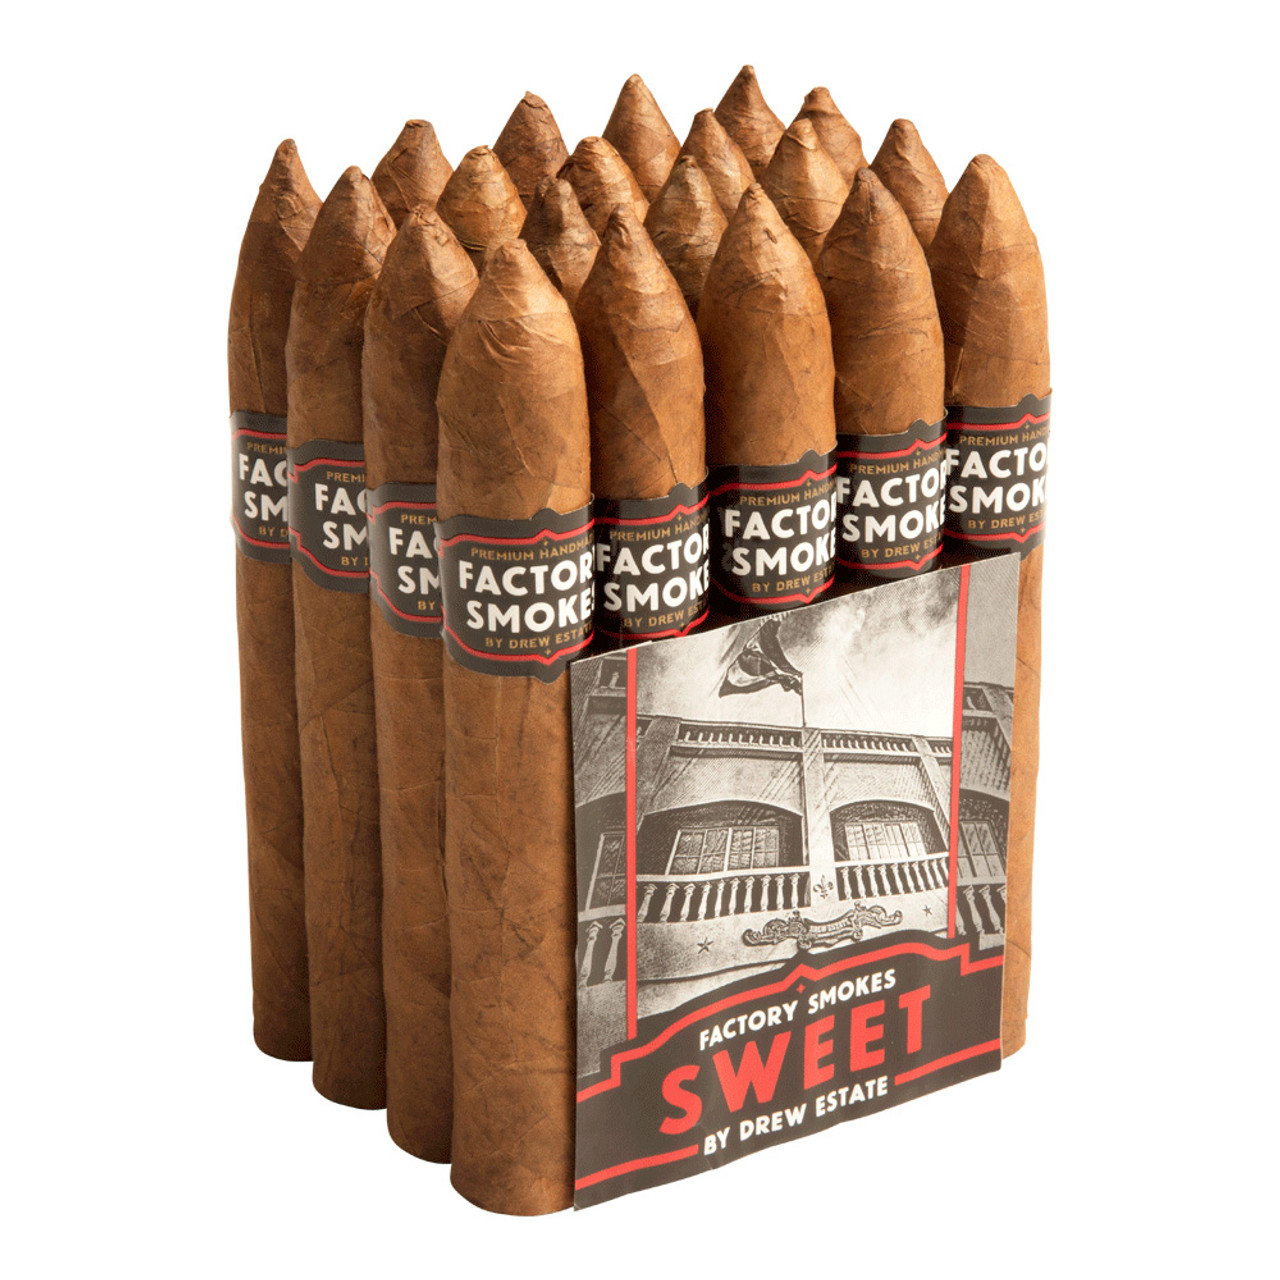 Factory Smokes by Drew Estate Belicoso Sweets Cigars - 6 x 54 (Bundle of 20)